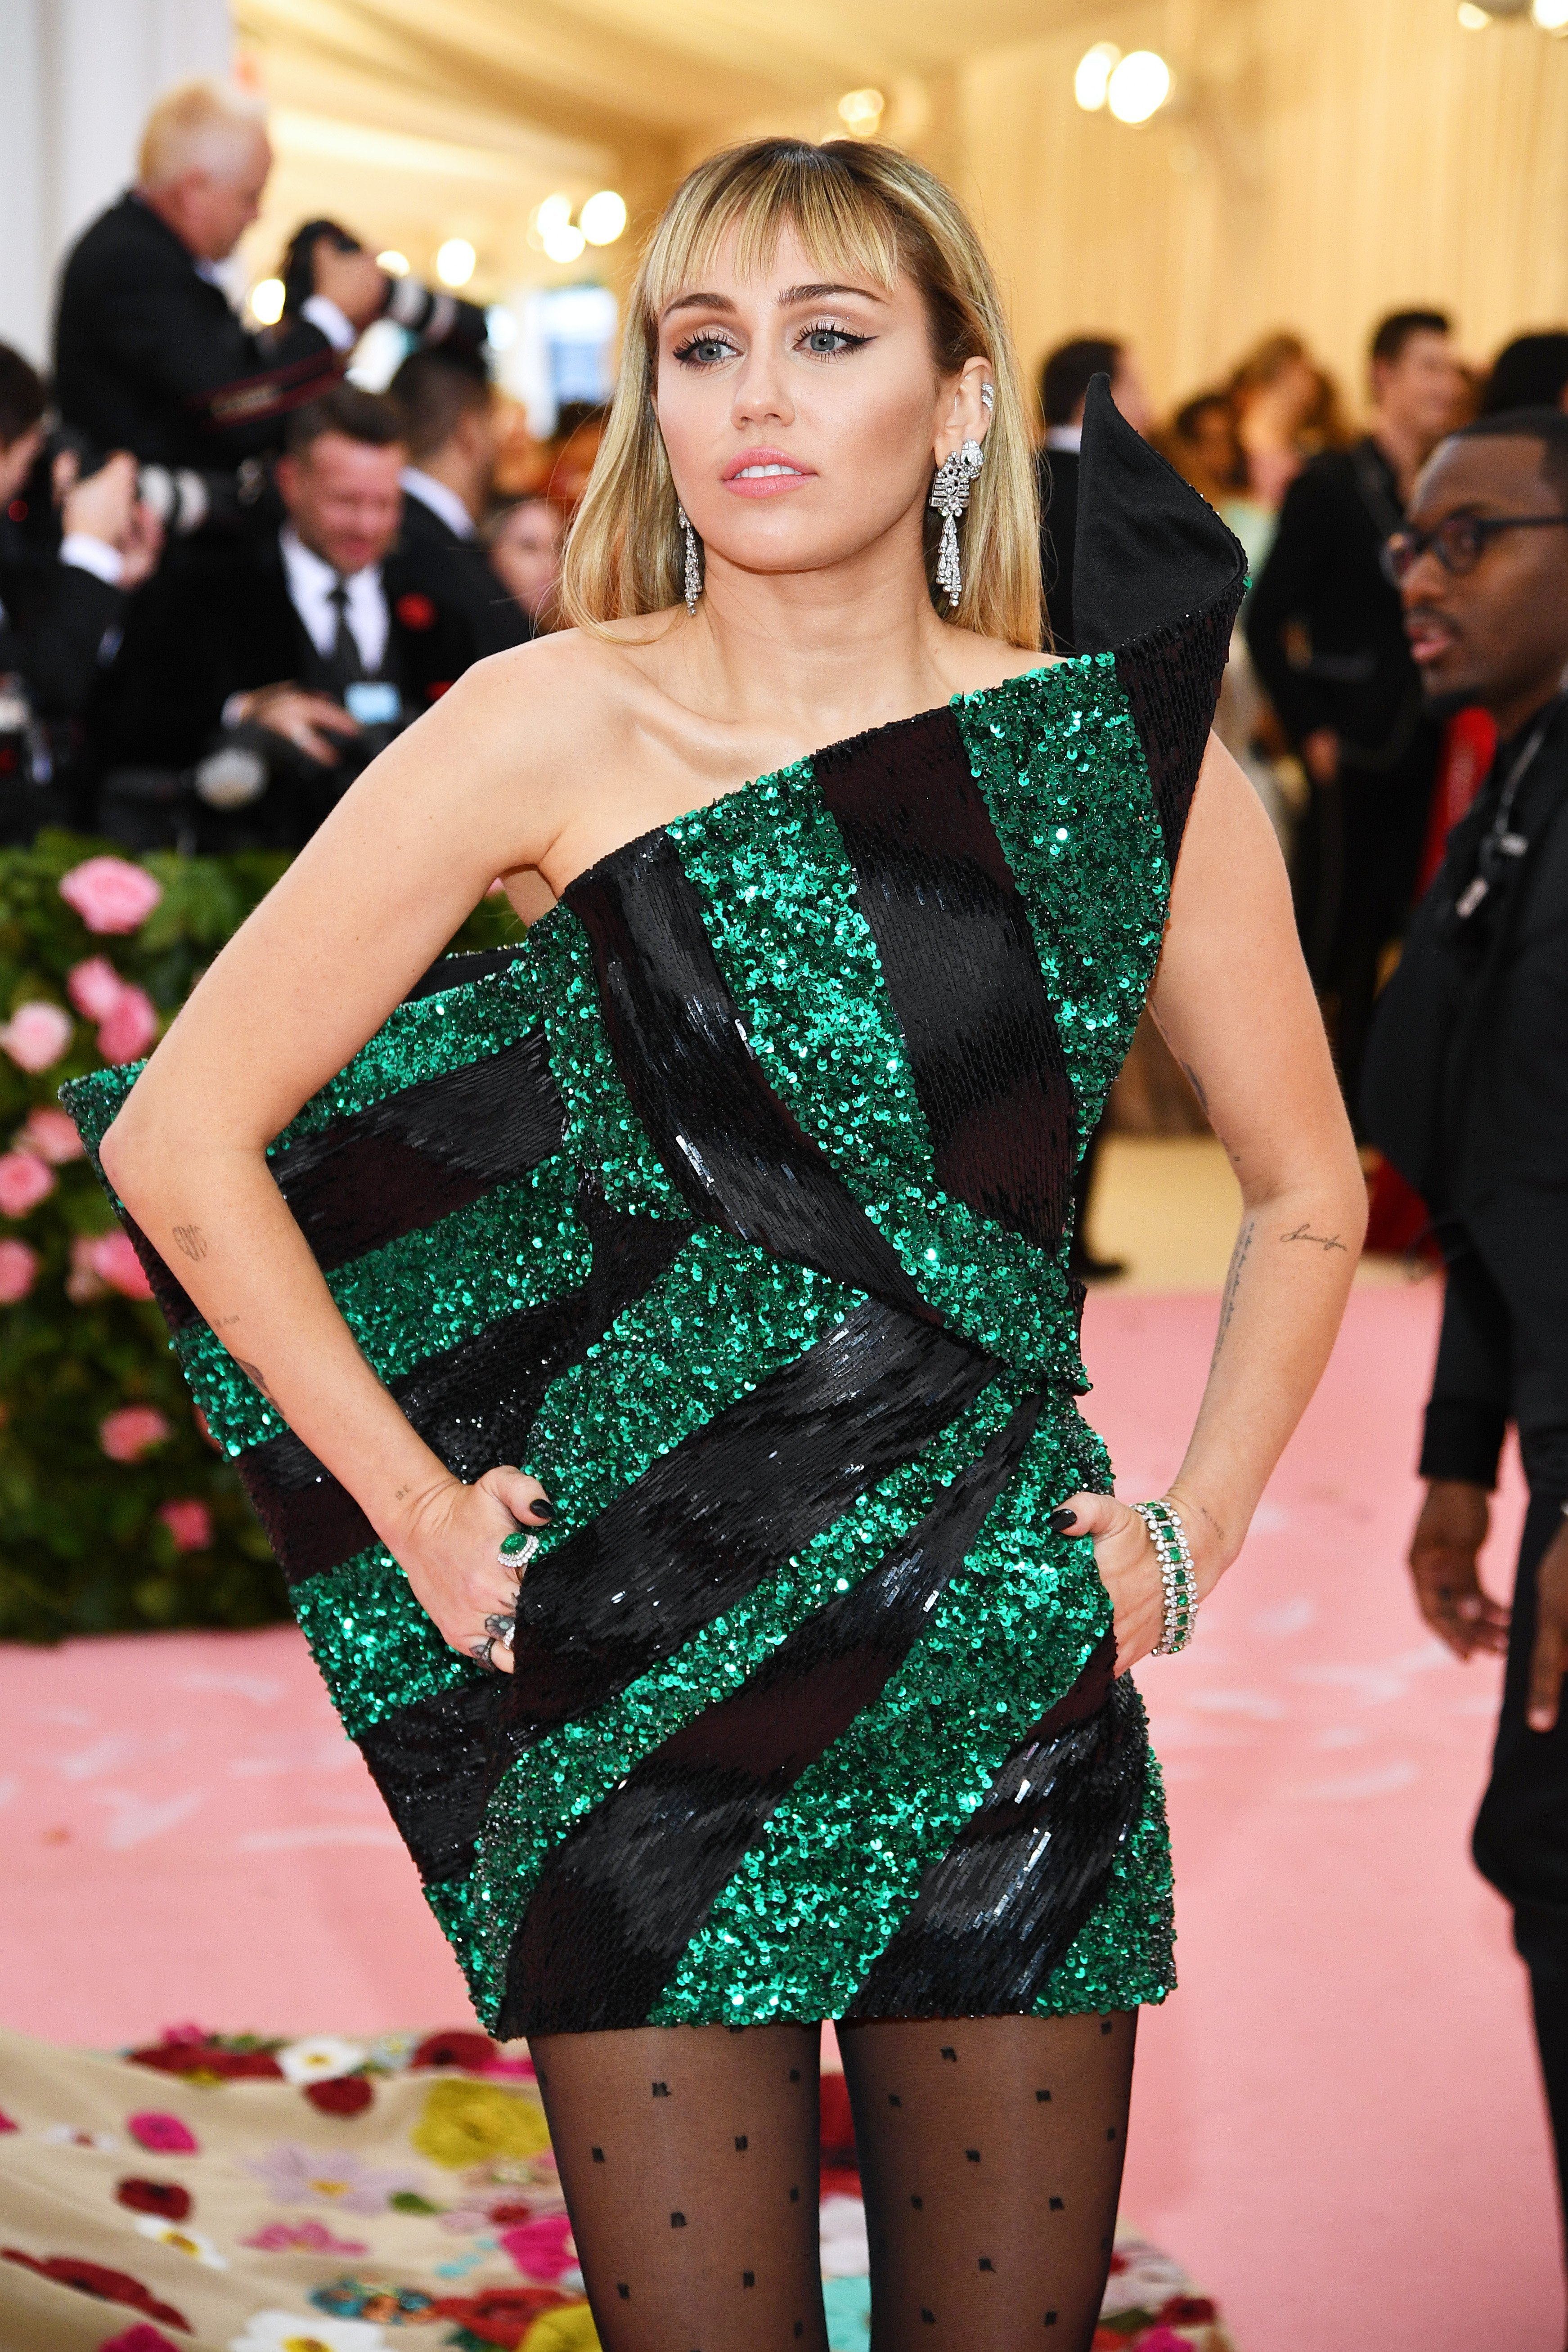 Miley Cyrus attends the 2019 Met Gala in New York City | Photo: Getty Images